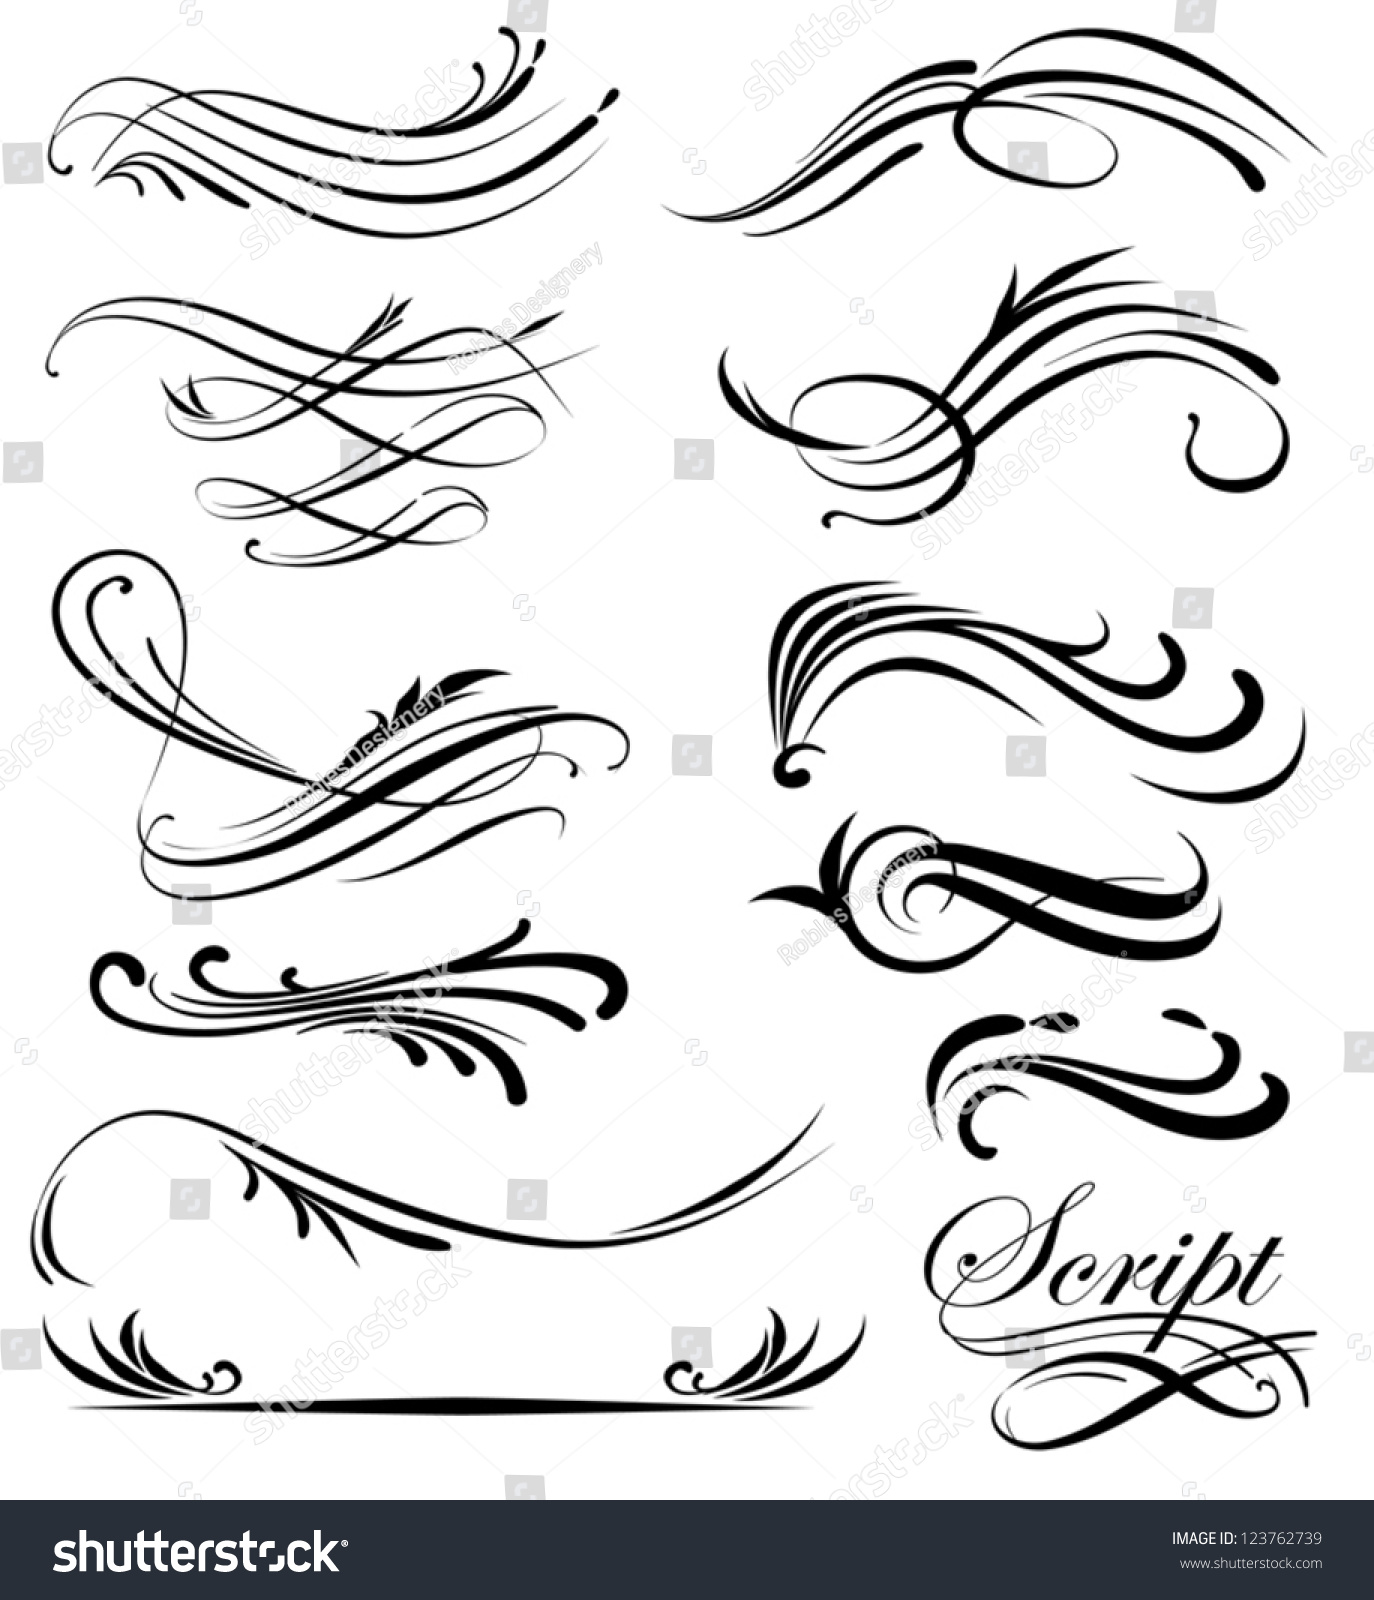 Line Art Vector : Decorative line art stock vector shutterstock